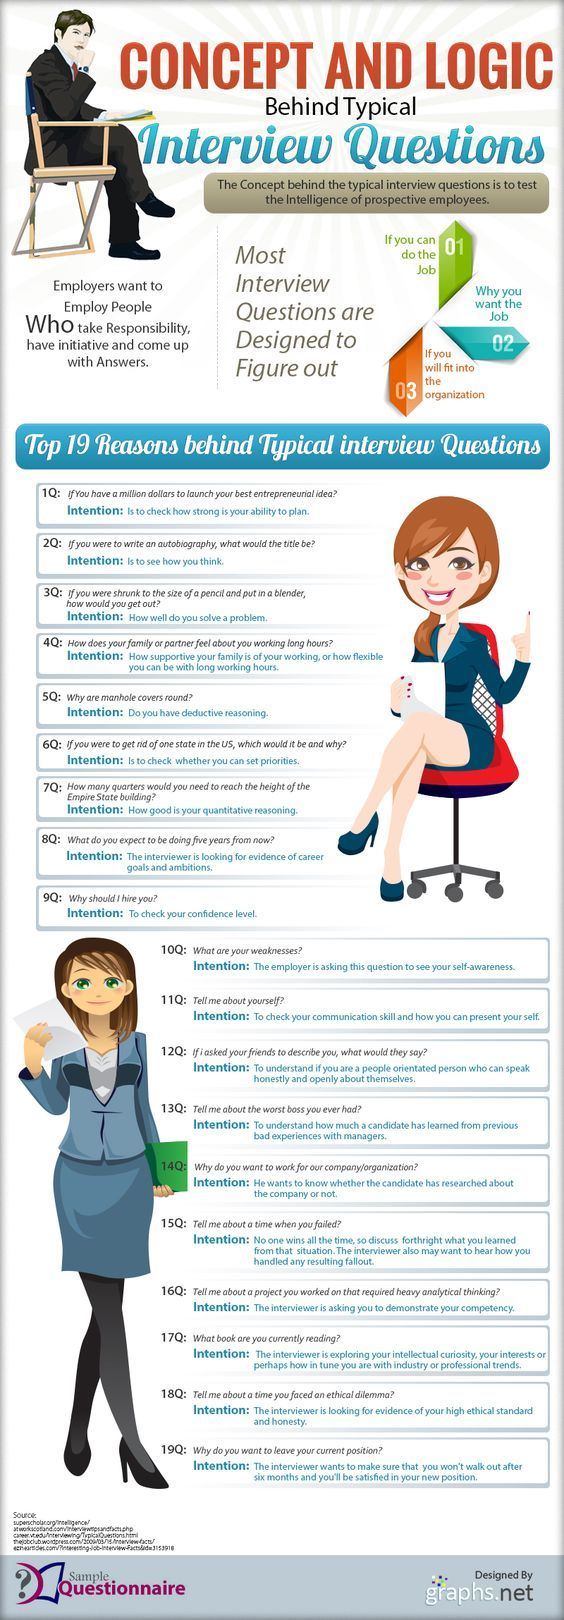 job interview questions and intentions infographics mania - Bad Interview Now What How To Learn From A Bad Job Interview